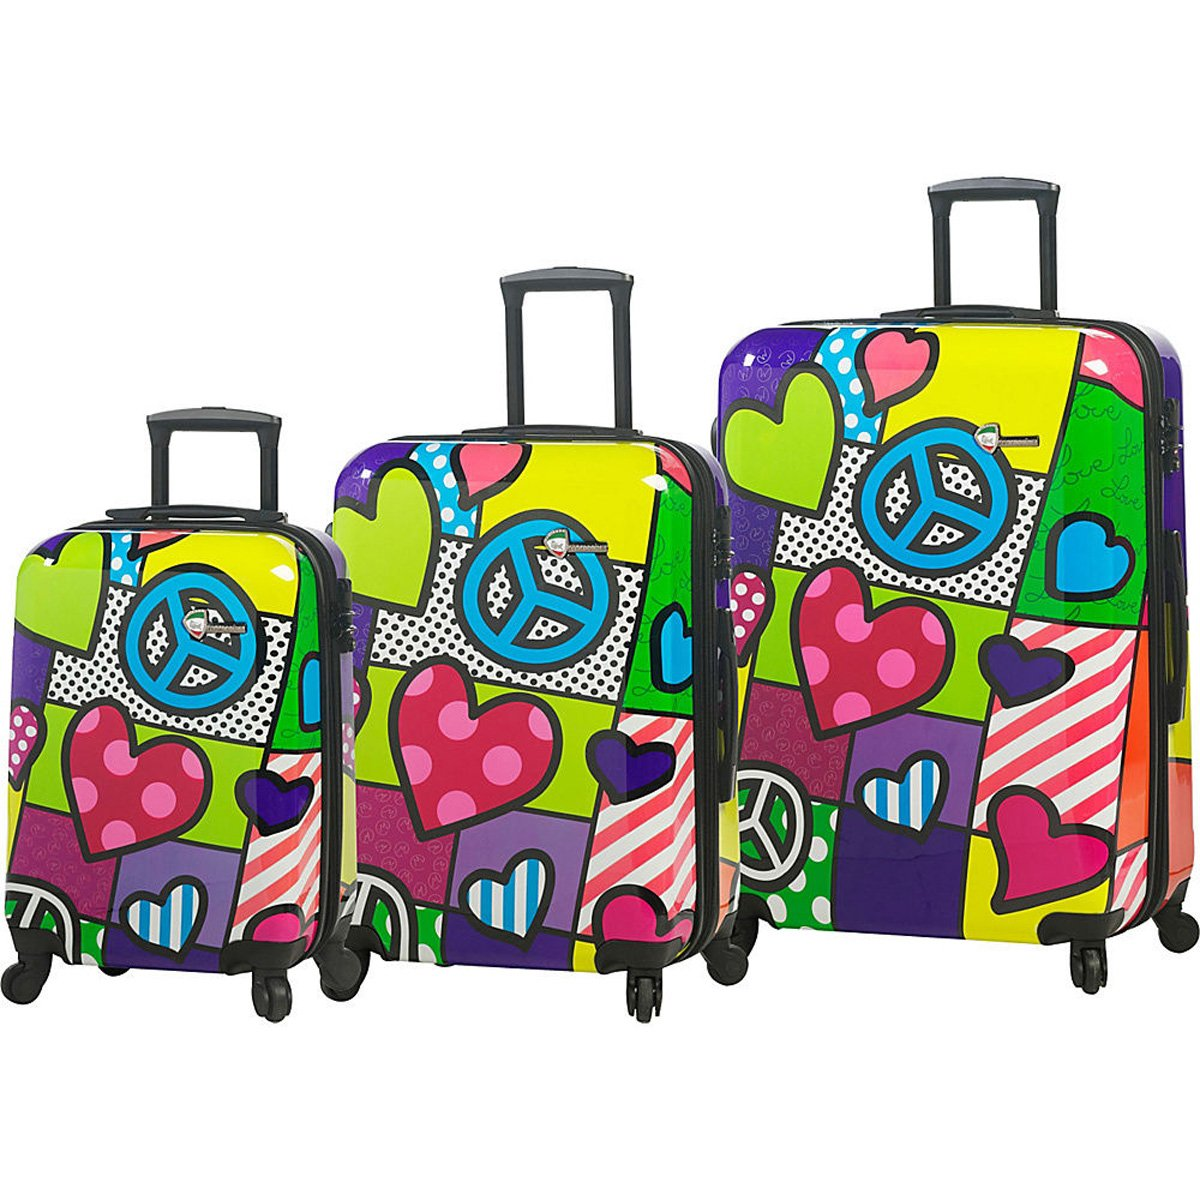 The Set of Classic Peace and Love 3 Piece Luggage Set